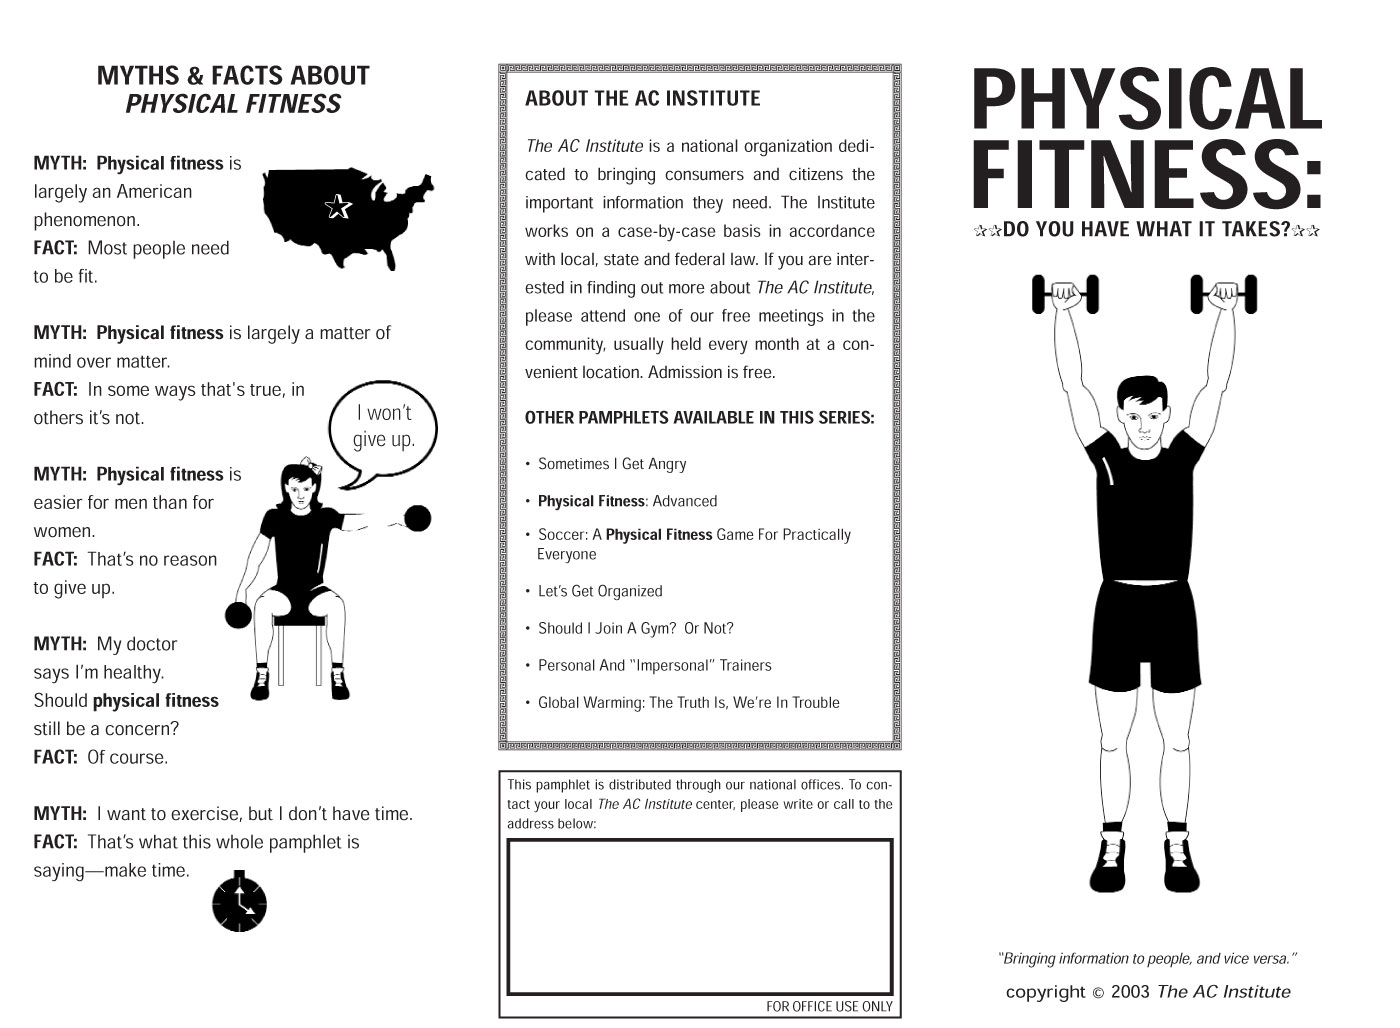 Physical Fitness: Do You Have What it Takes?